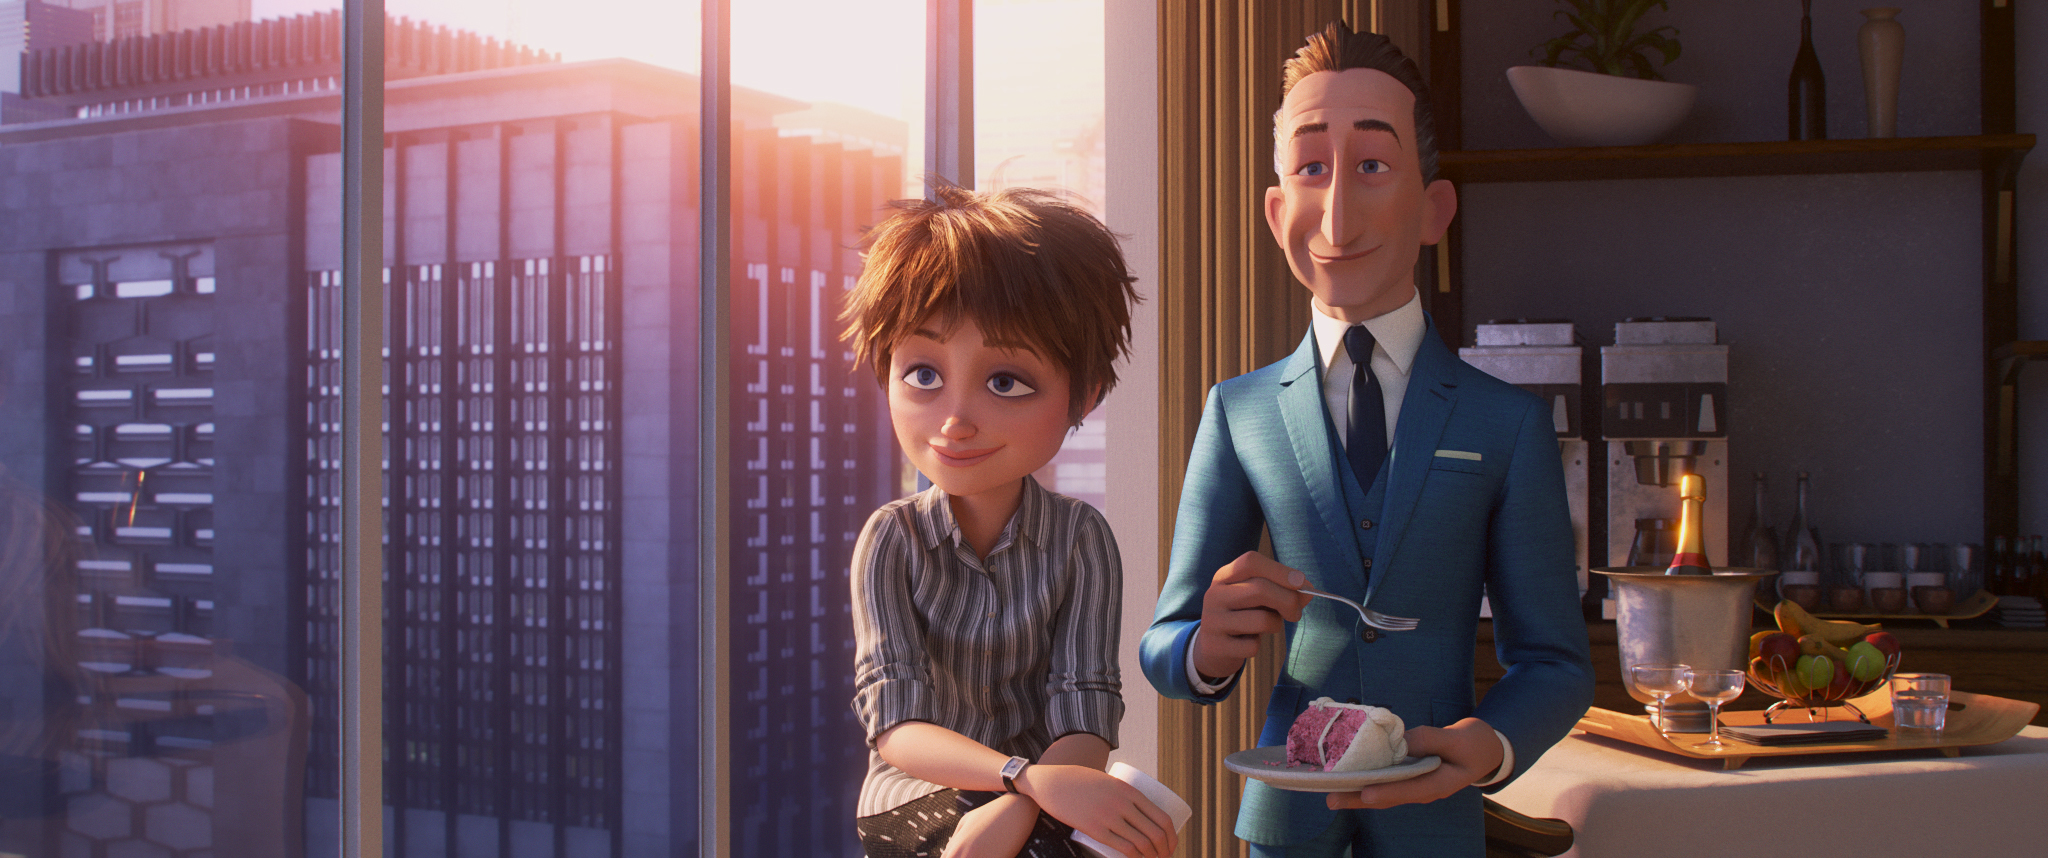 "OPPORTUNITY KNOCKS – In ""Incredibles 2,"" siblings Winston and Evelyn Deavor are huge fans of the Supers and start a campaign to improve their public image and ultimately bring them back. Featuring the voices of Catherine Keener as the brilliant and laid-back Evelyn Deavor, and Bob Odenkirk as the ultra-wealthy and savvy Winston Deavor, ""Incredibles 2"" opens in U.S. theaters on June 15, 2018. ©2018 Disney•Pixar. All Rights Reserved."